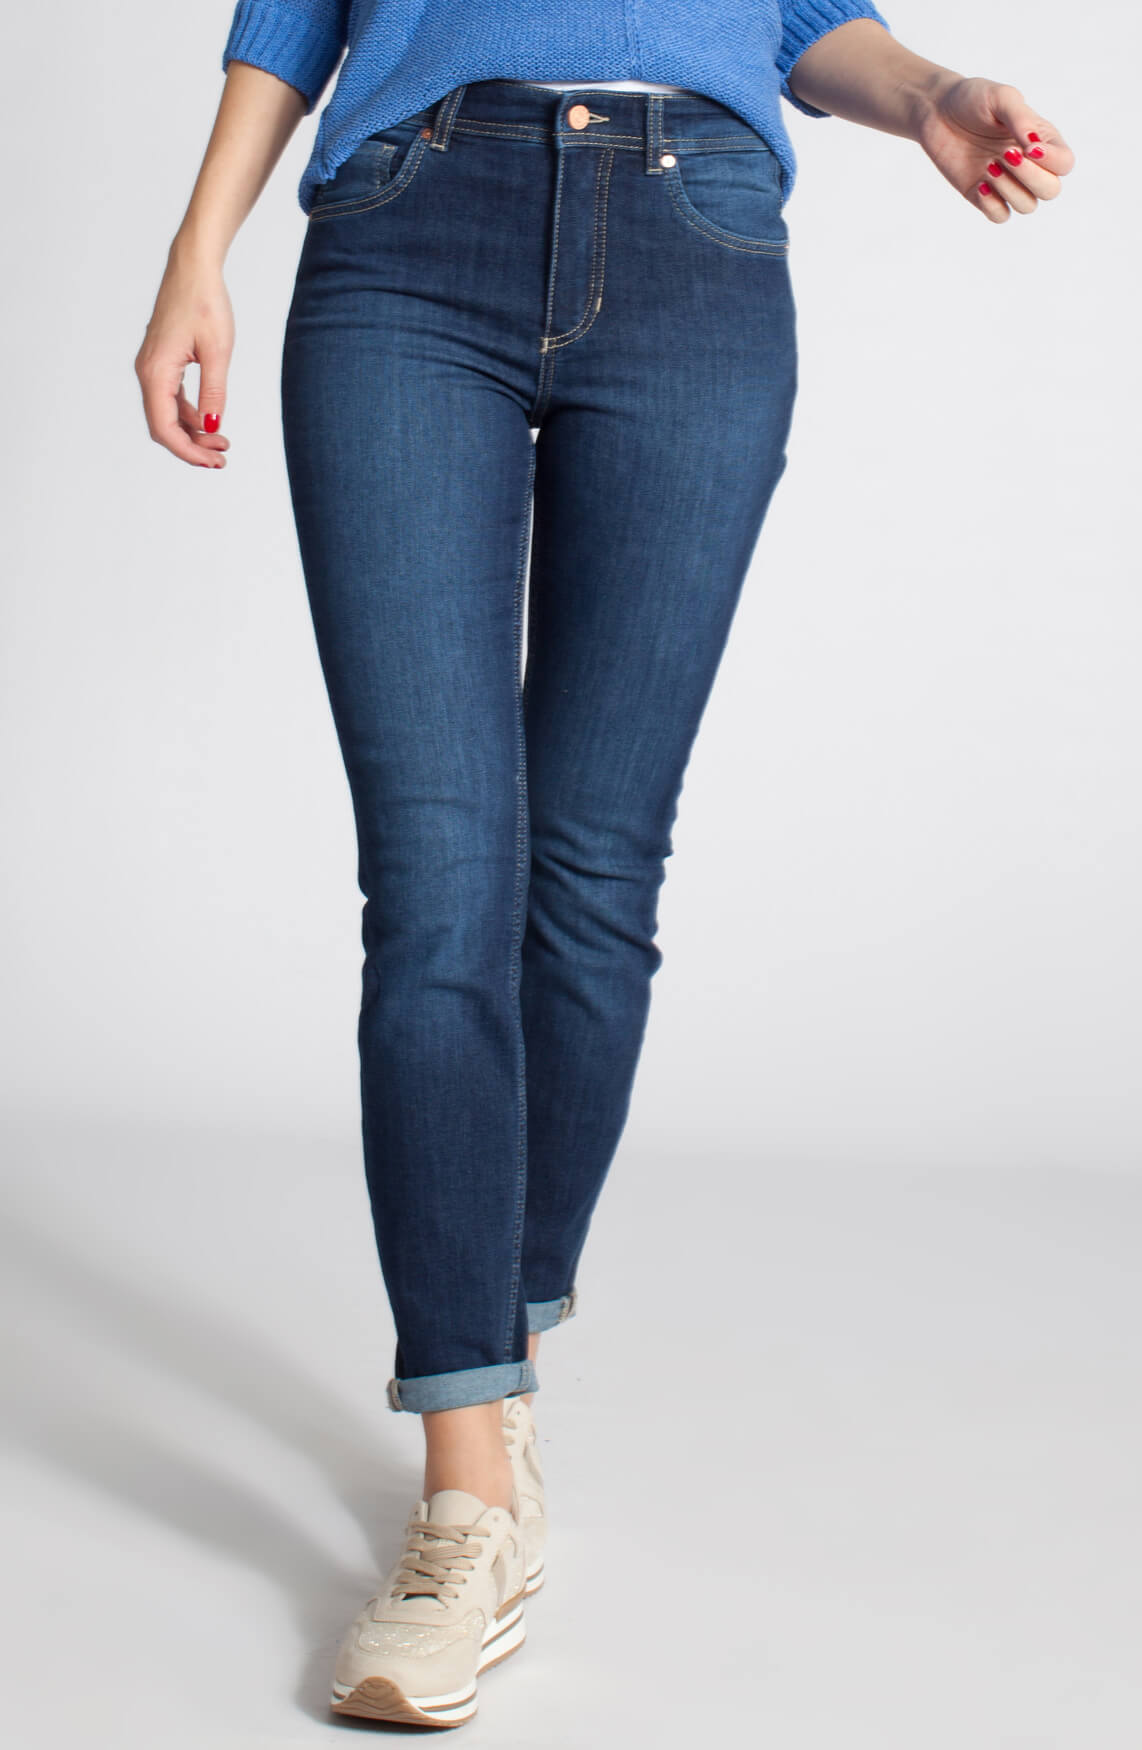 Rosner Dames Audrey donkere jeans Blauw